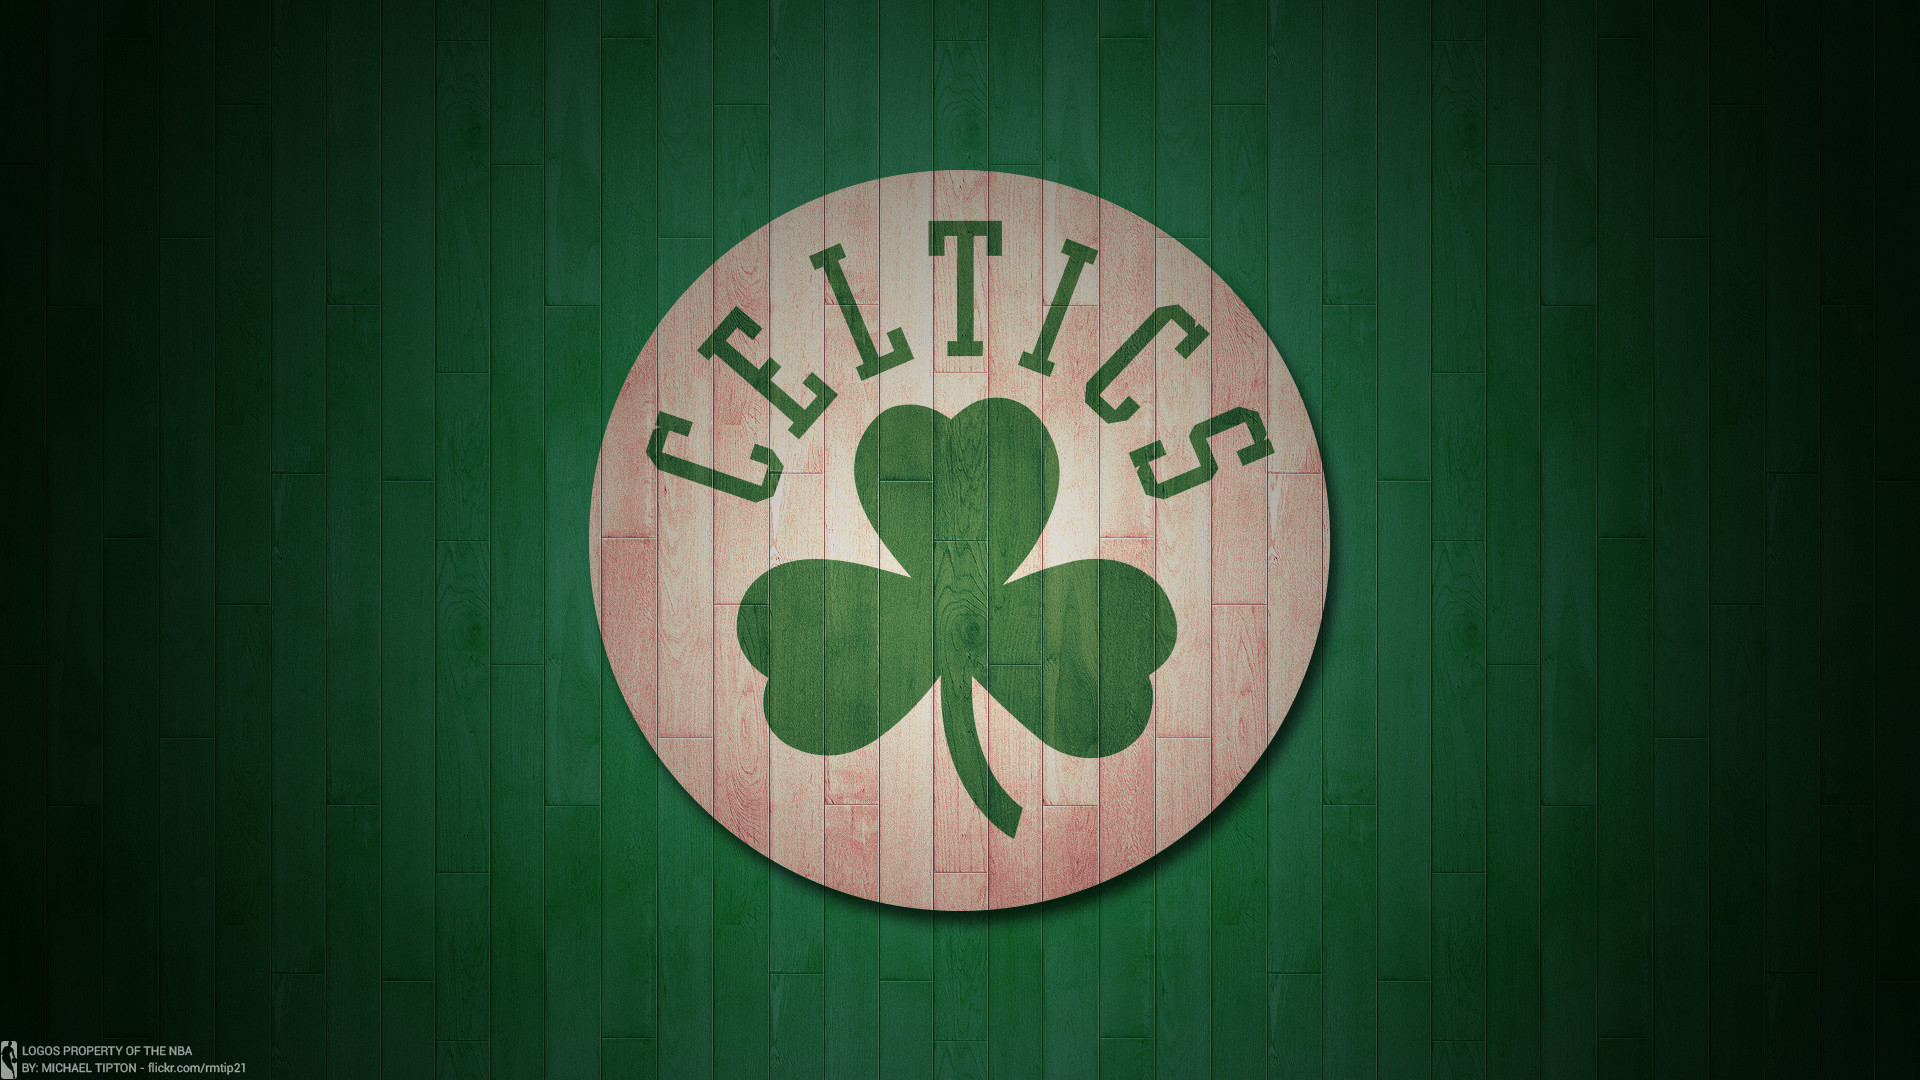 Celtics Wallpapers 183 ① Wallpapertag